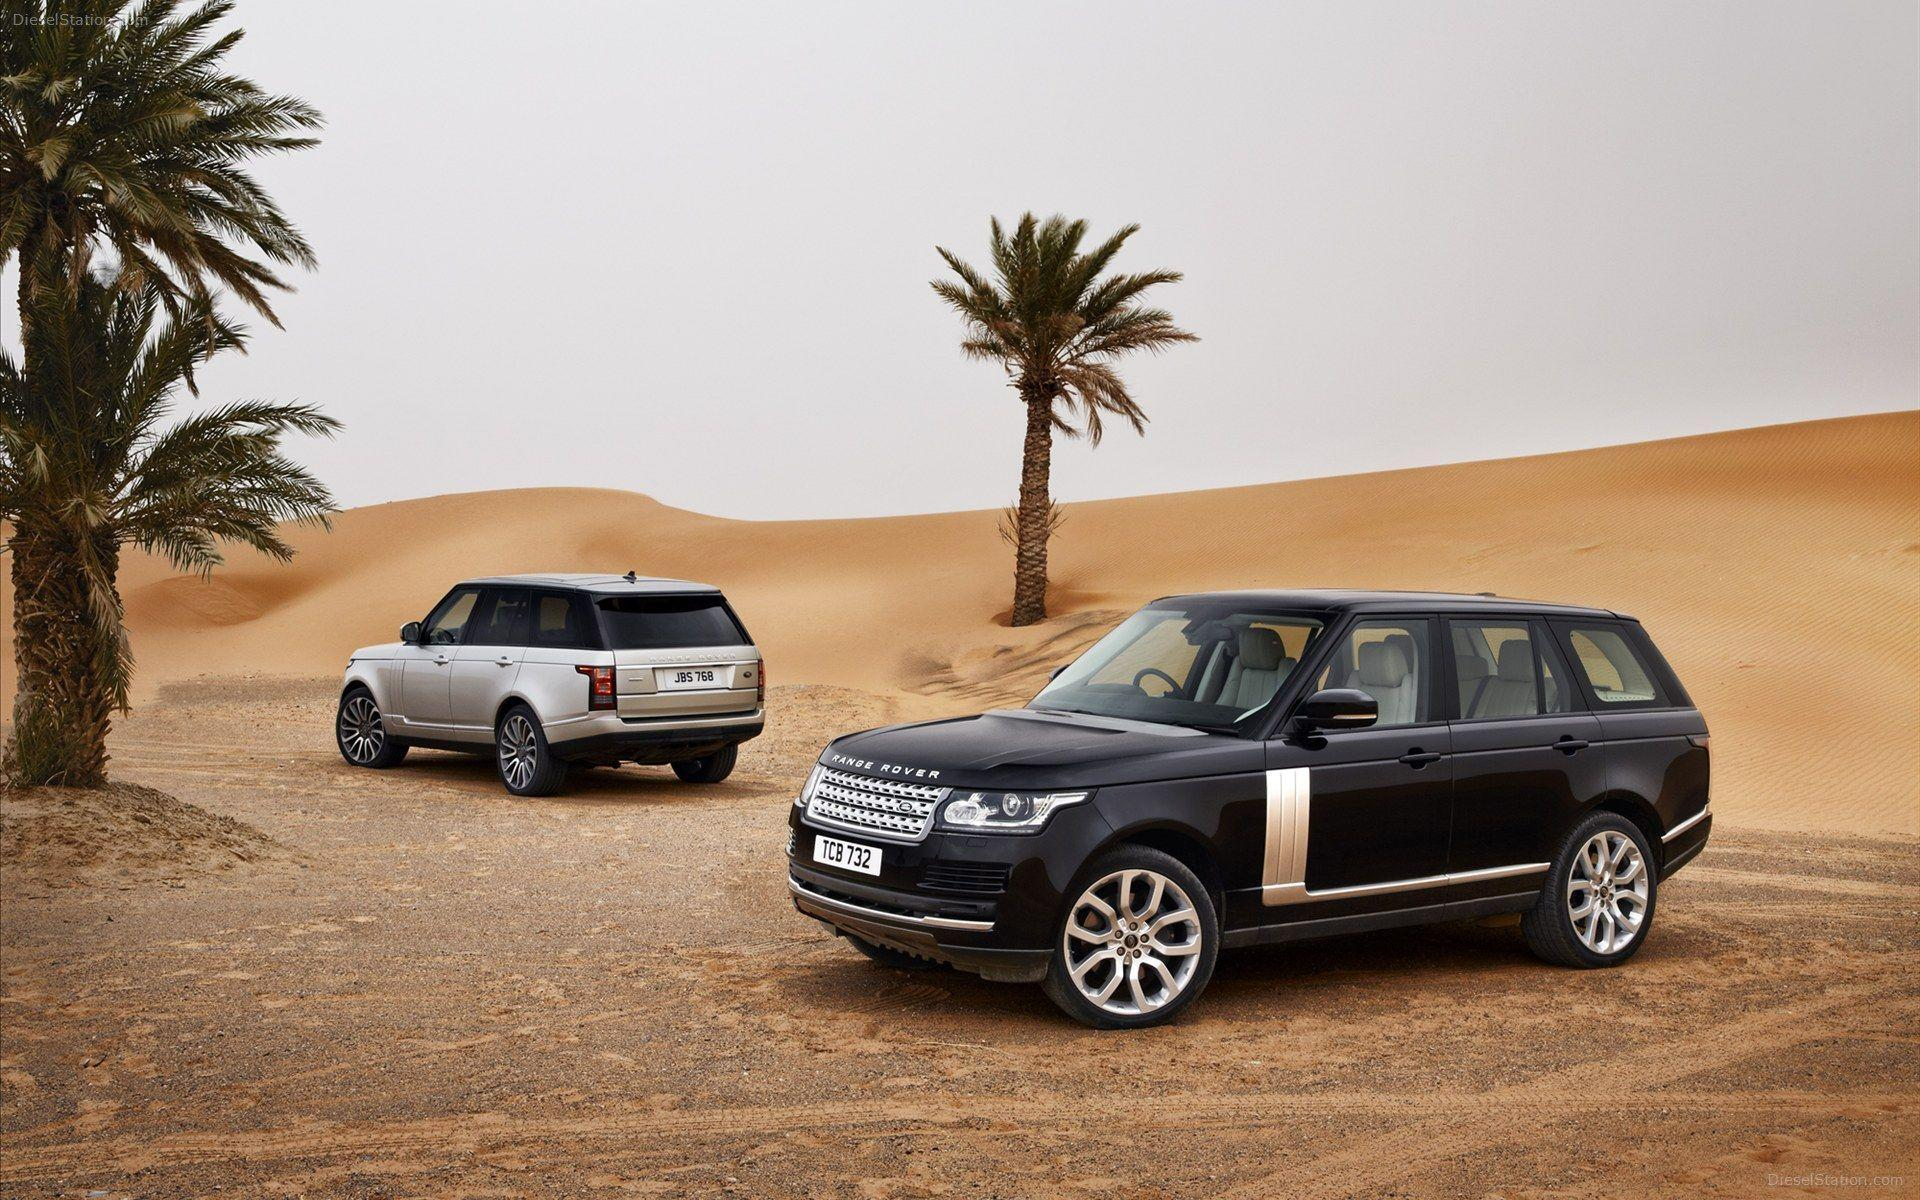 Land Rover Wallpaper Widescreen - WallpaperSafari